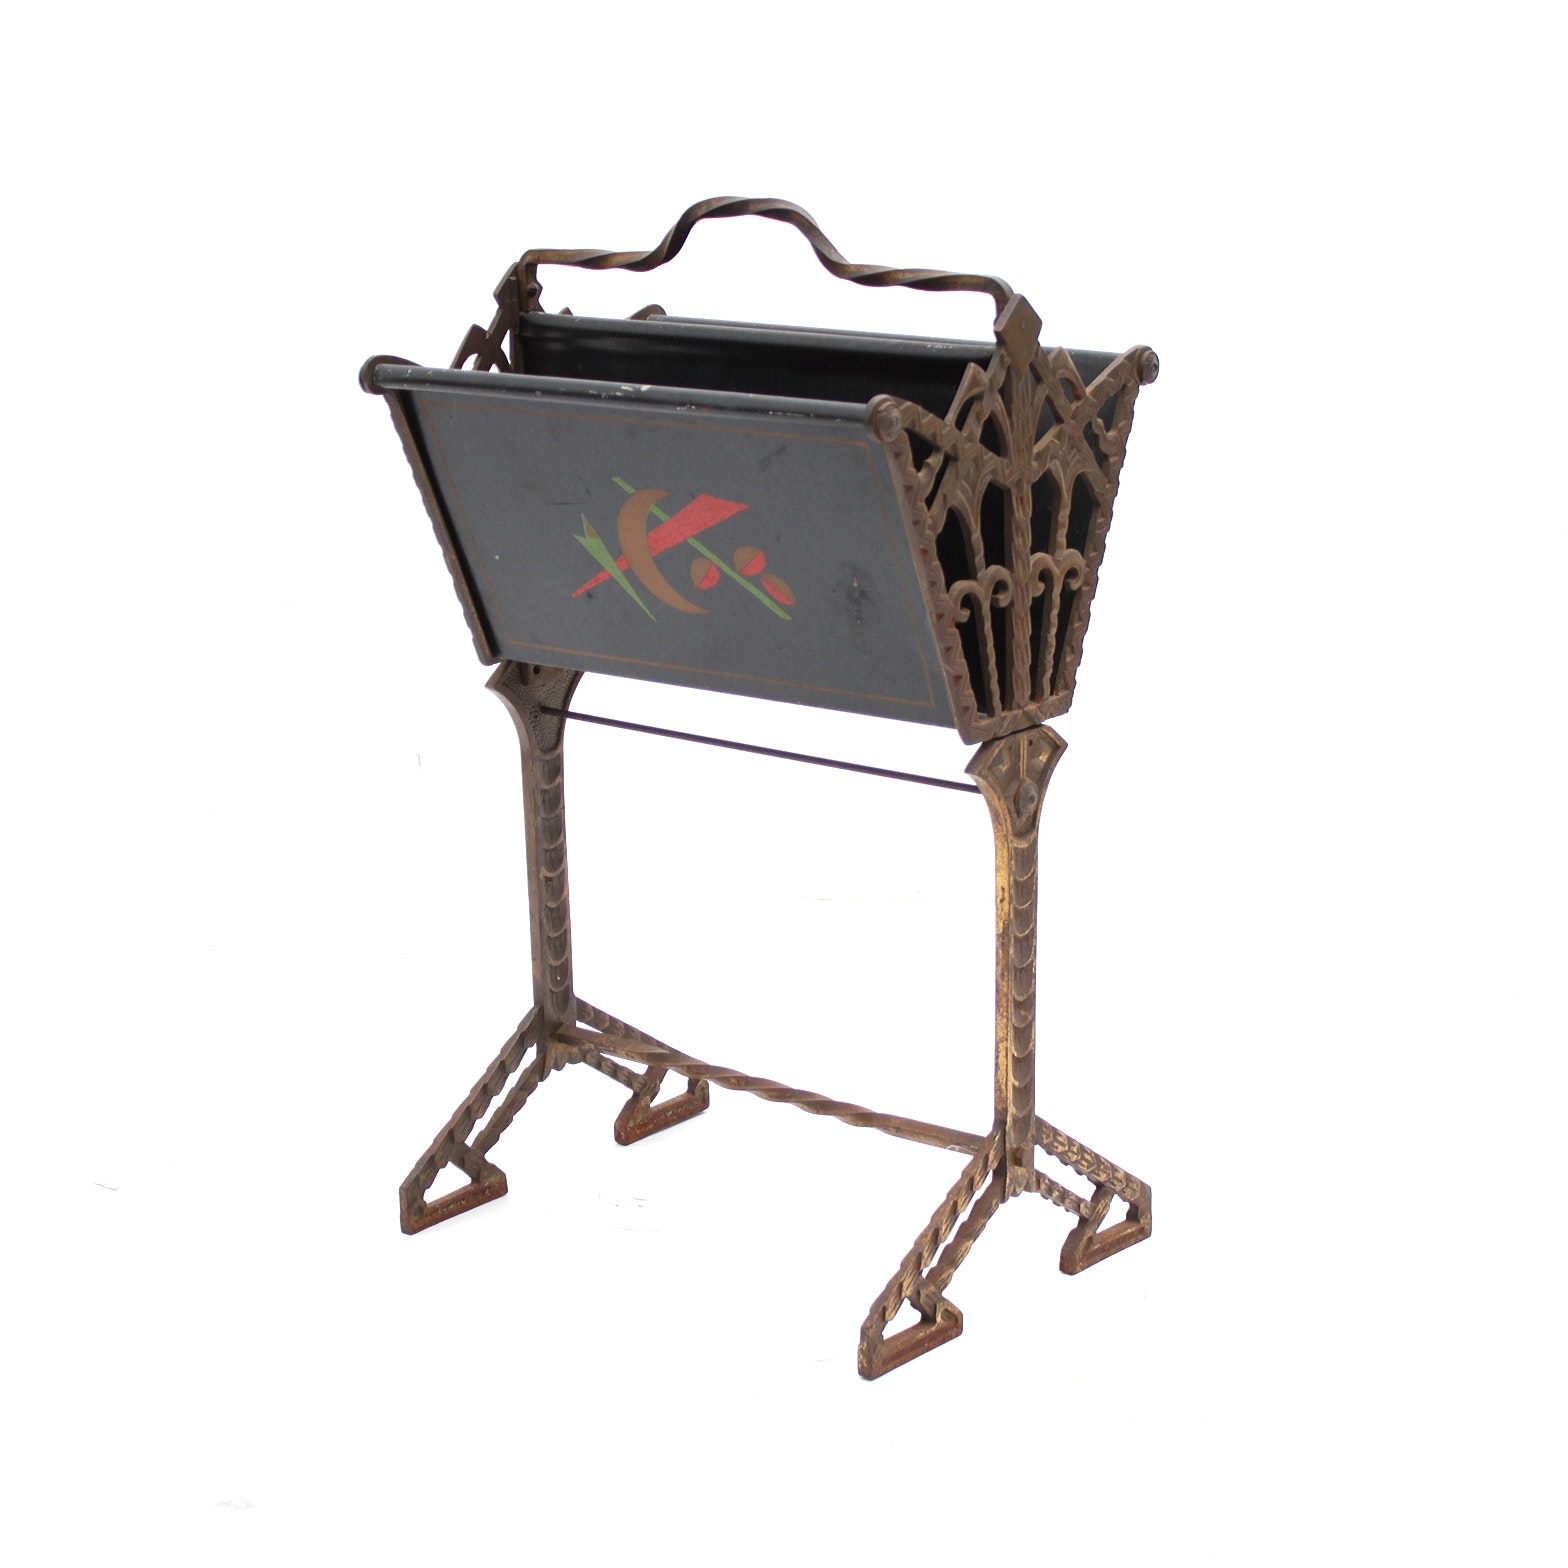 Early 20th-Century Art Deco Cast Iron and Painted Magazine Rack